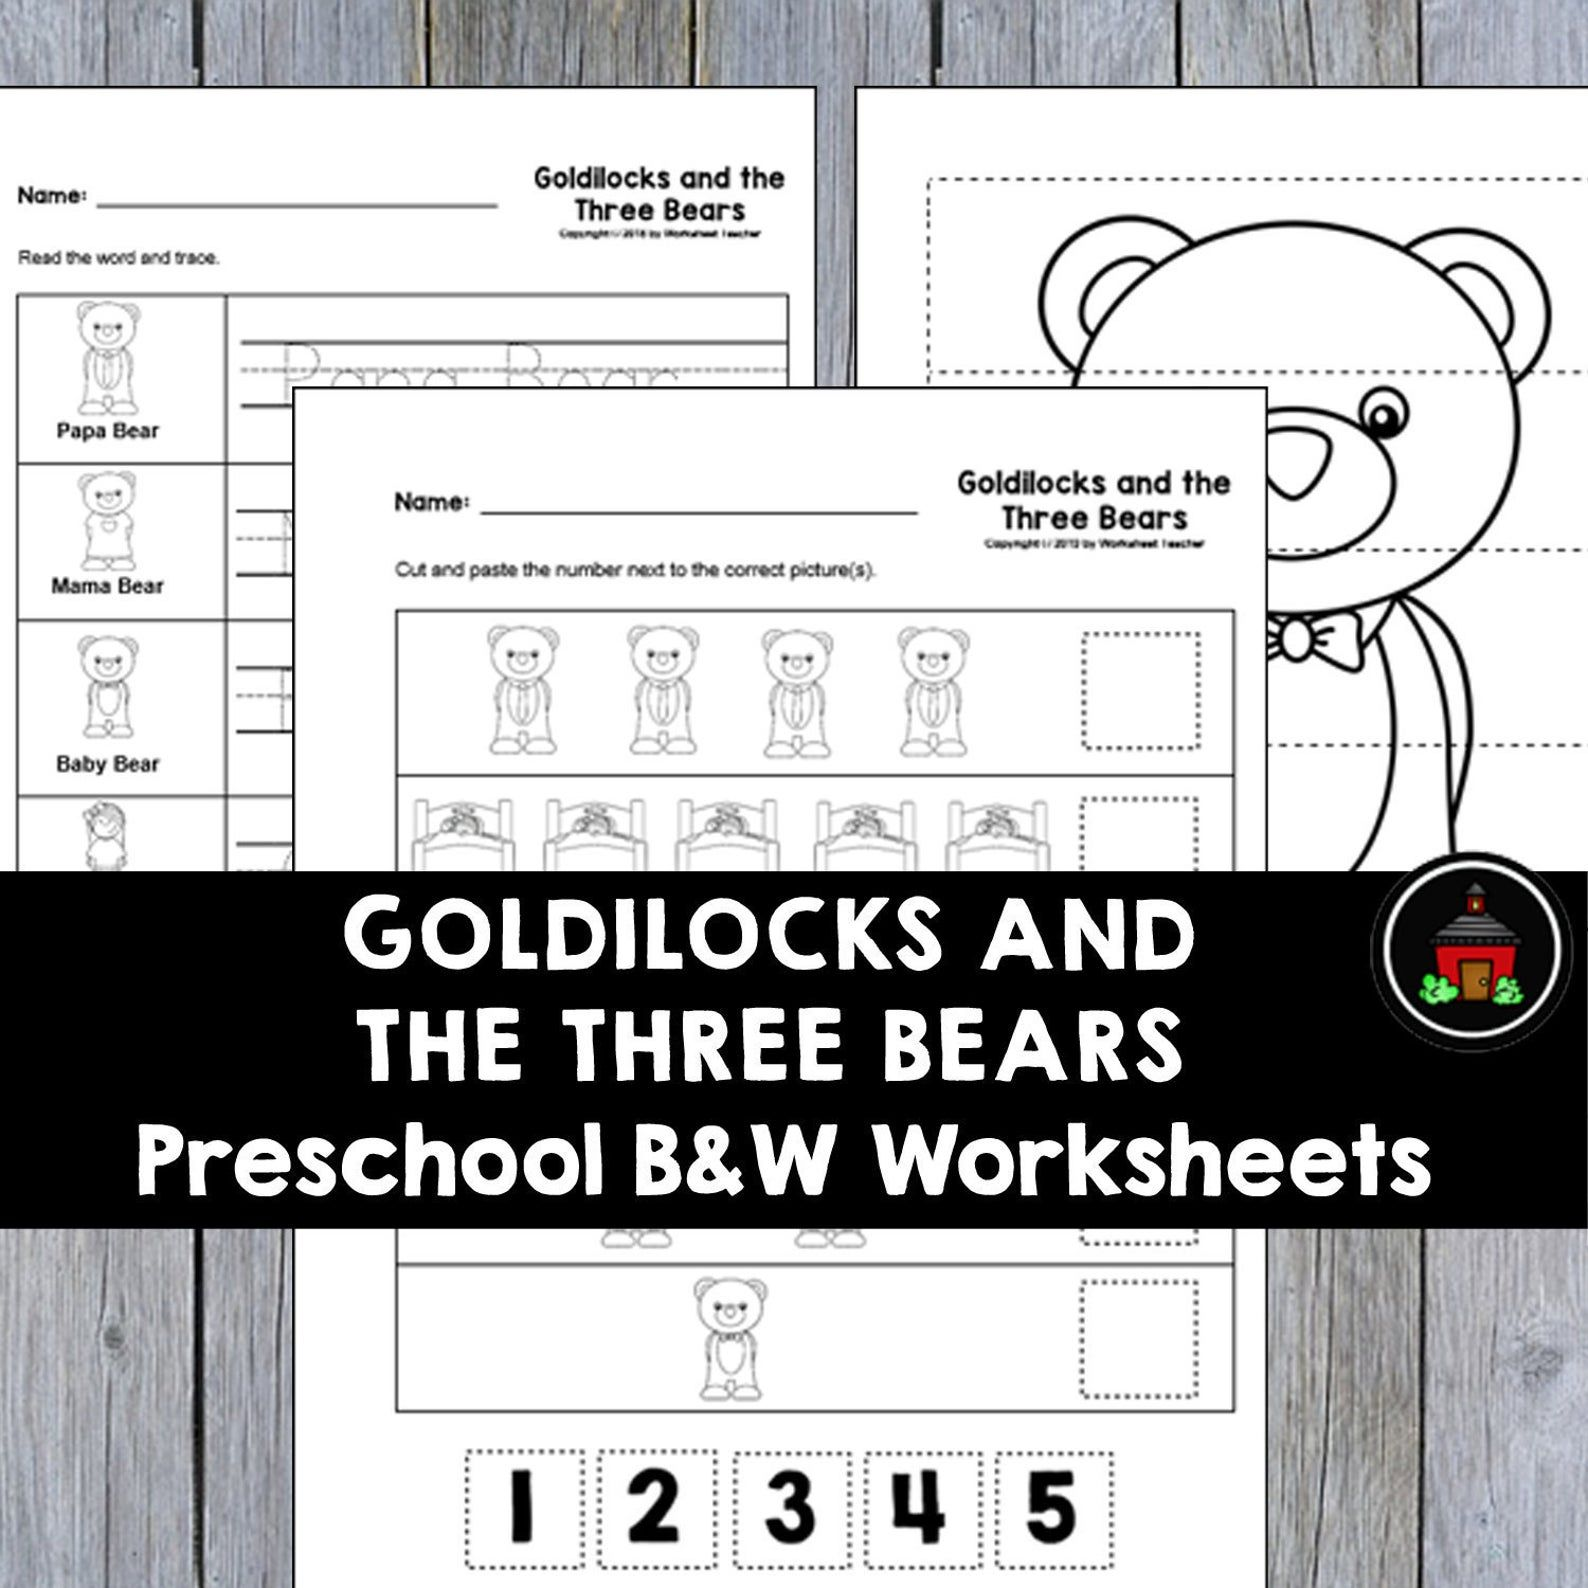 10 Goldilocks And The Three Bears Preschool Curriculum